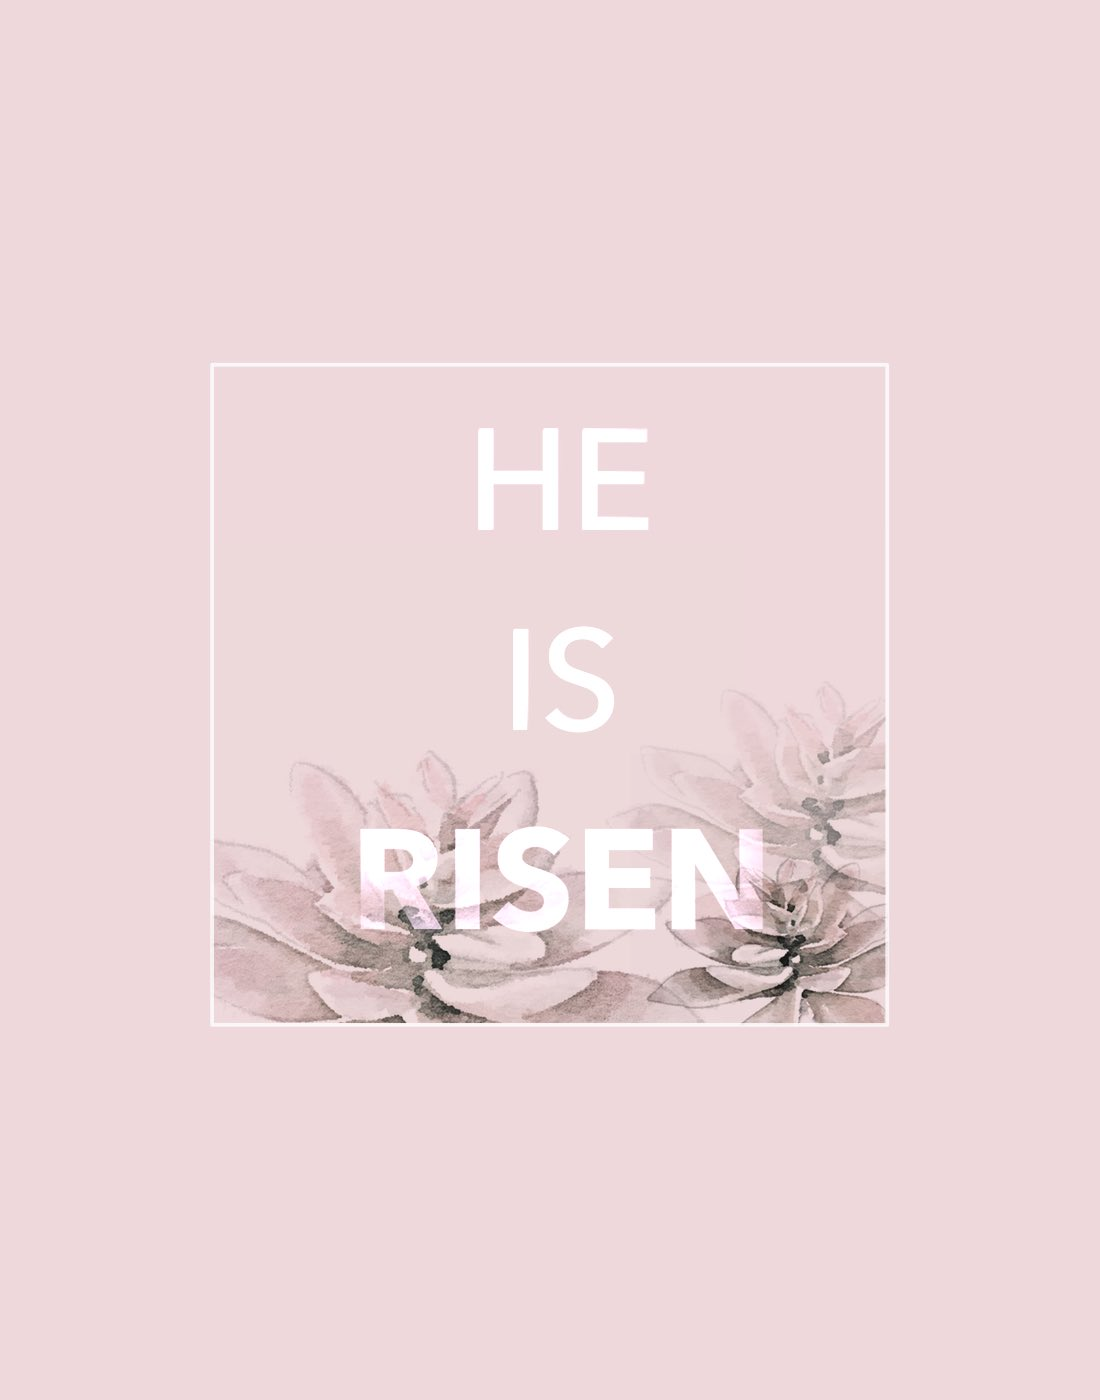 He is risen Easter Blog Post kraft&mint